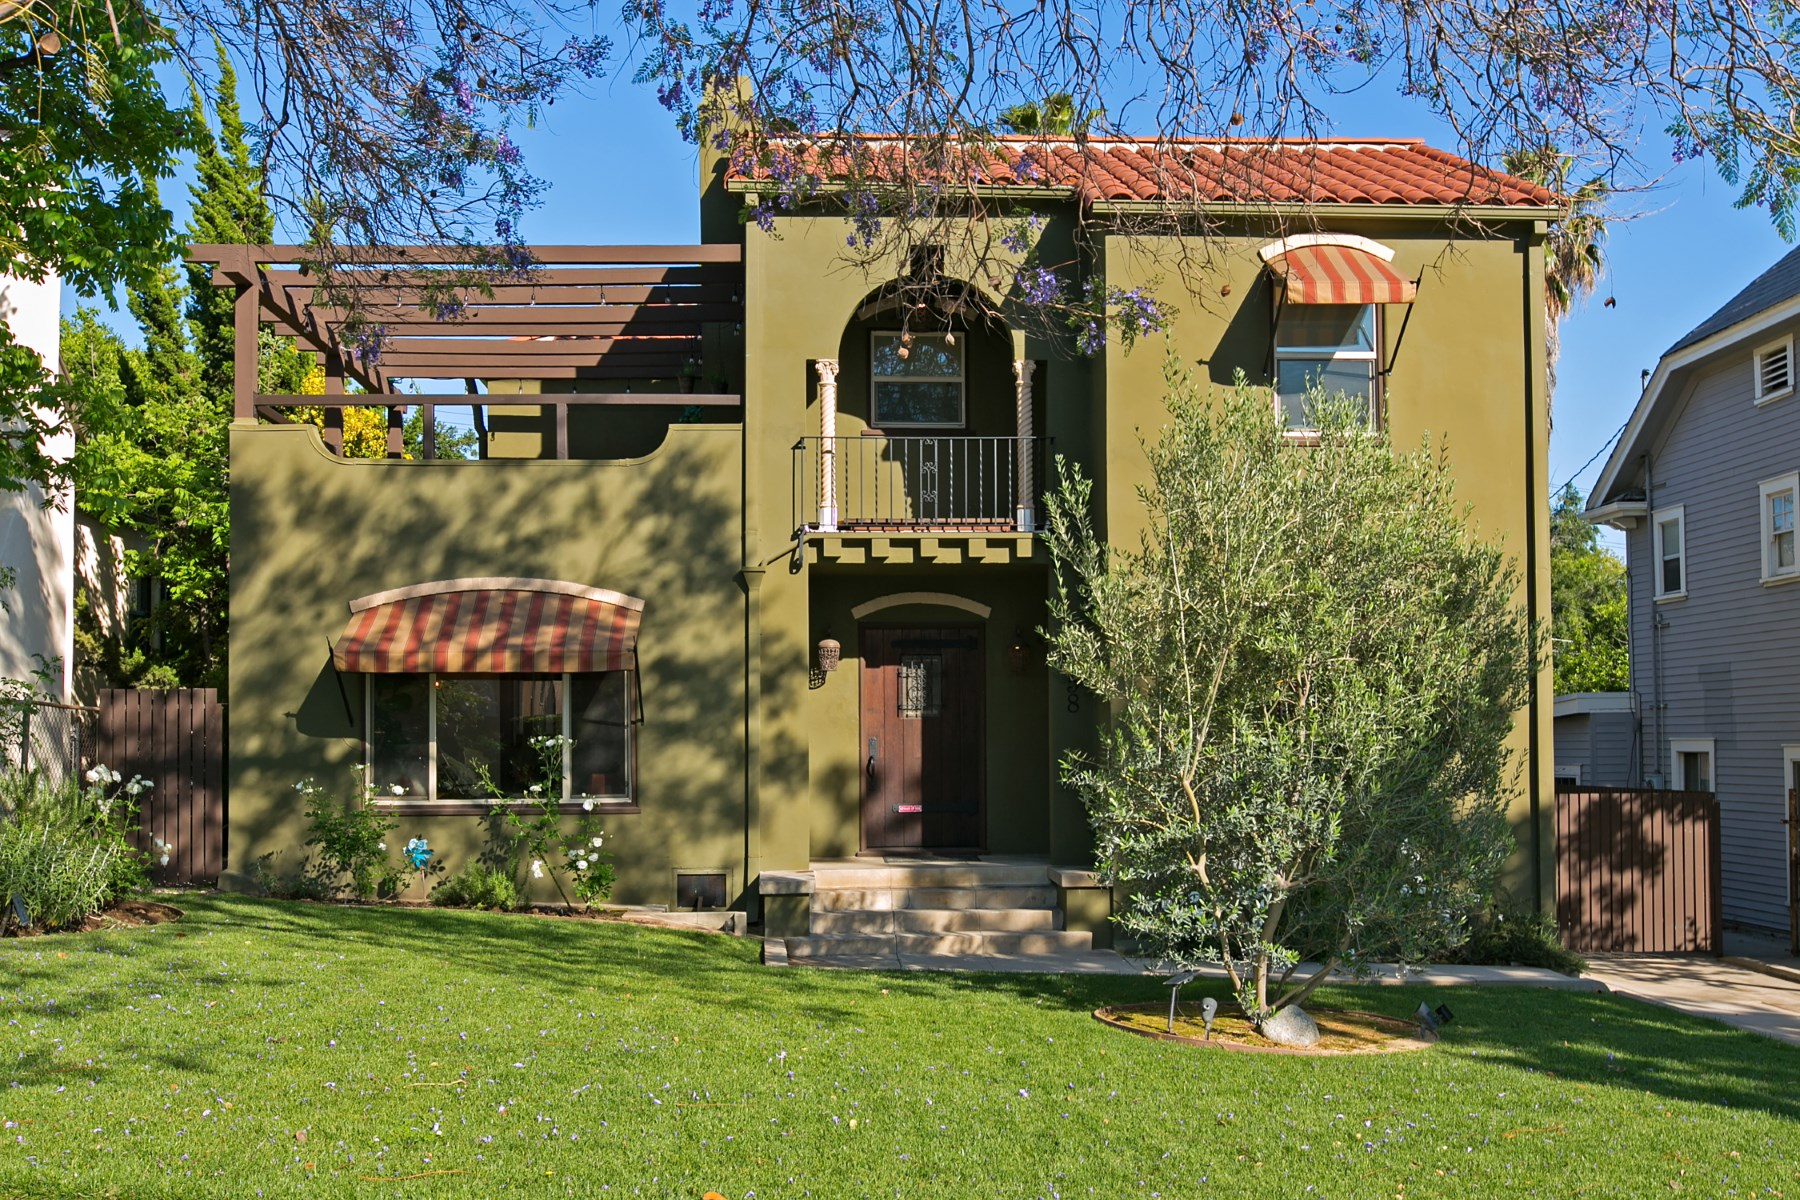 Single Family Home for Sale at 5258 Live Oak View Avenue Eagle Rock, Los Angeles, California, 90041 United States